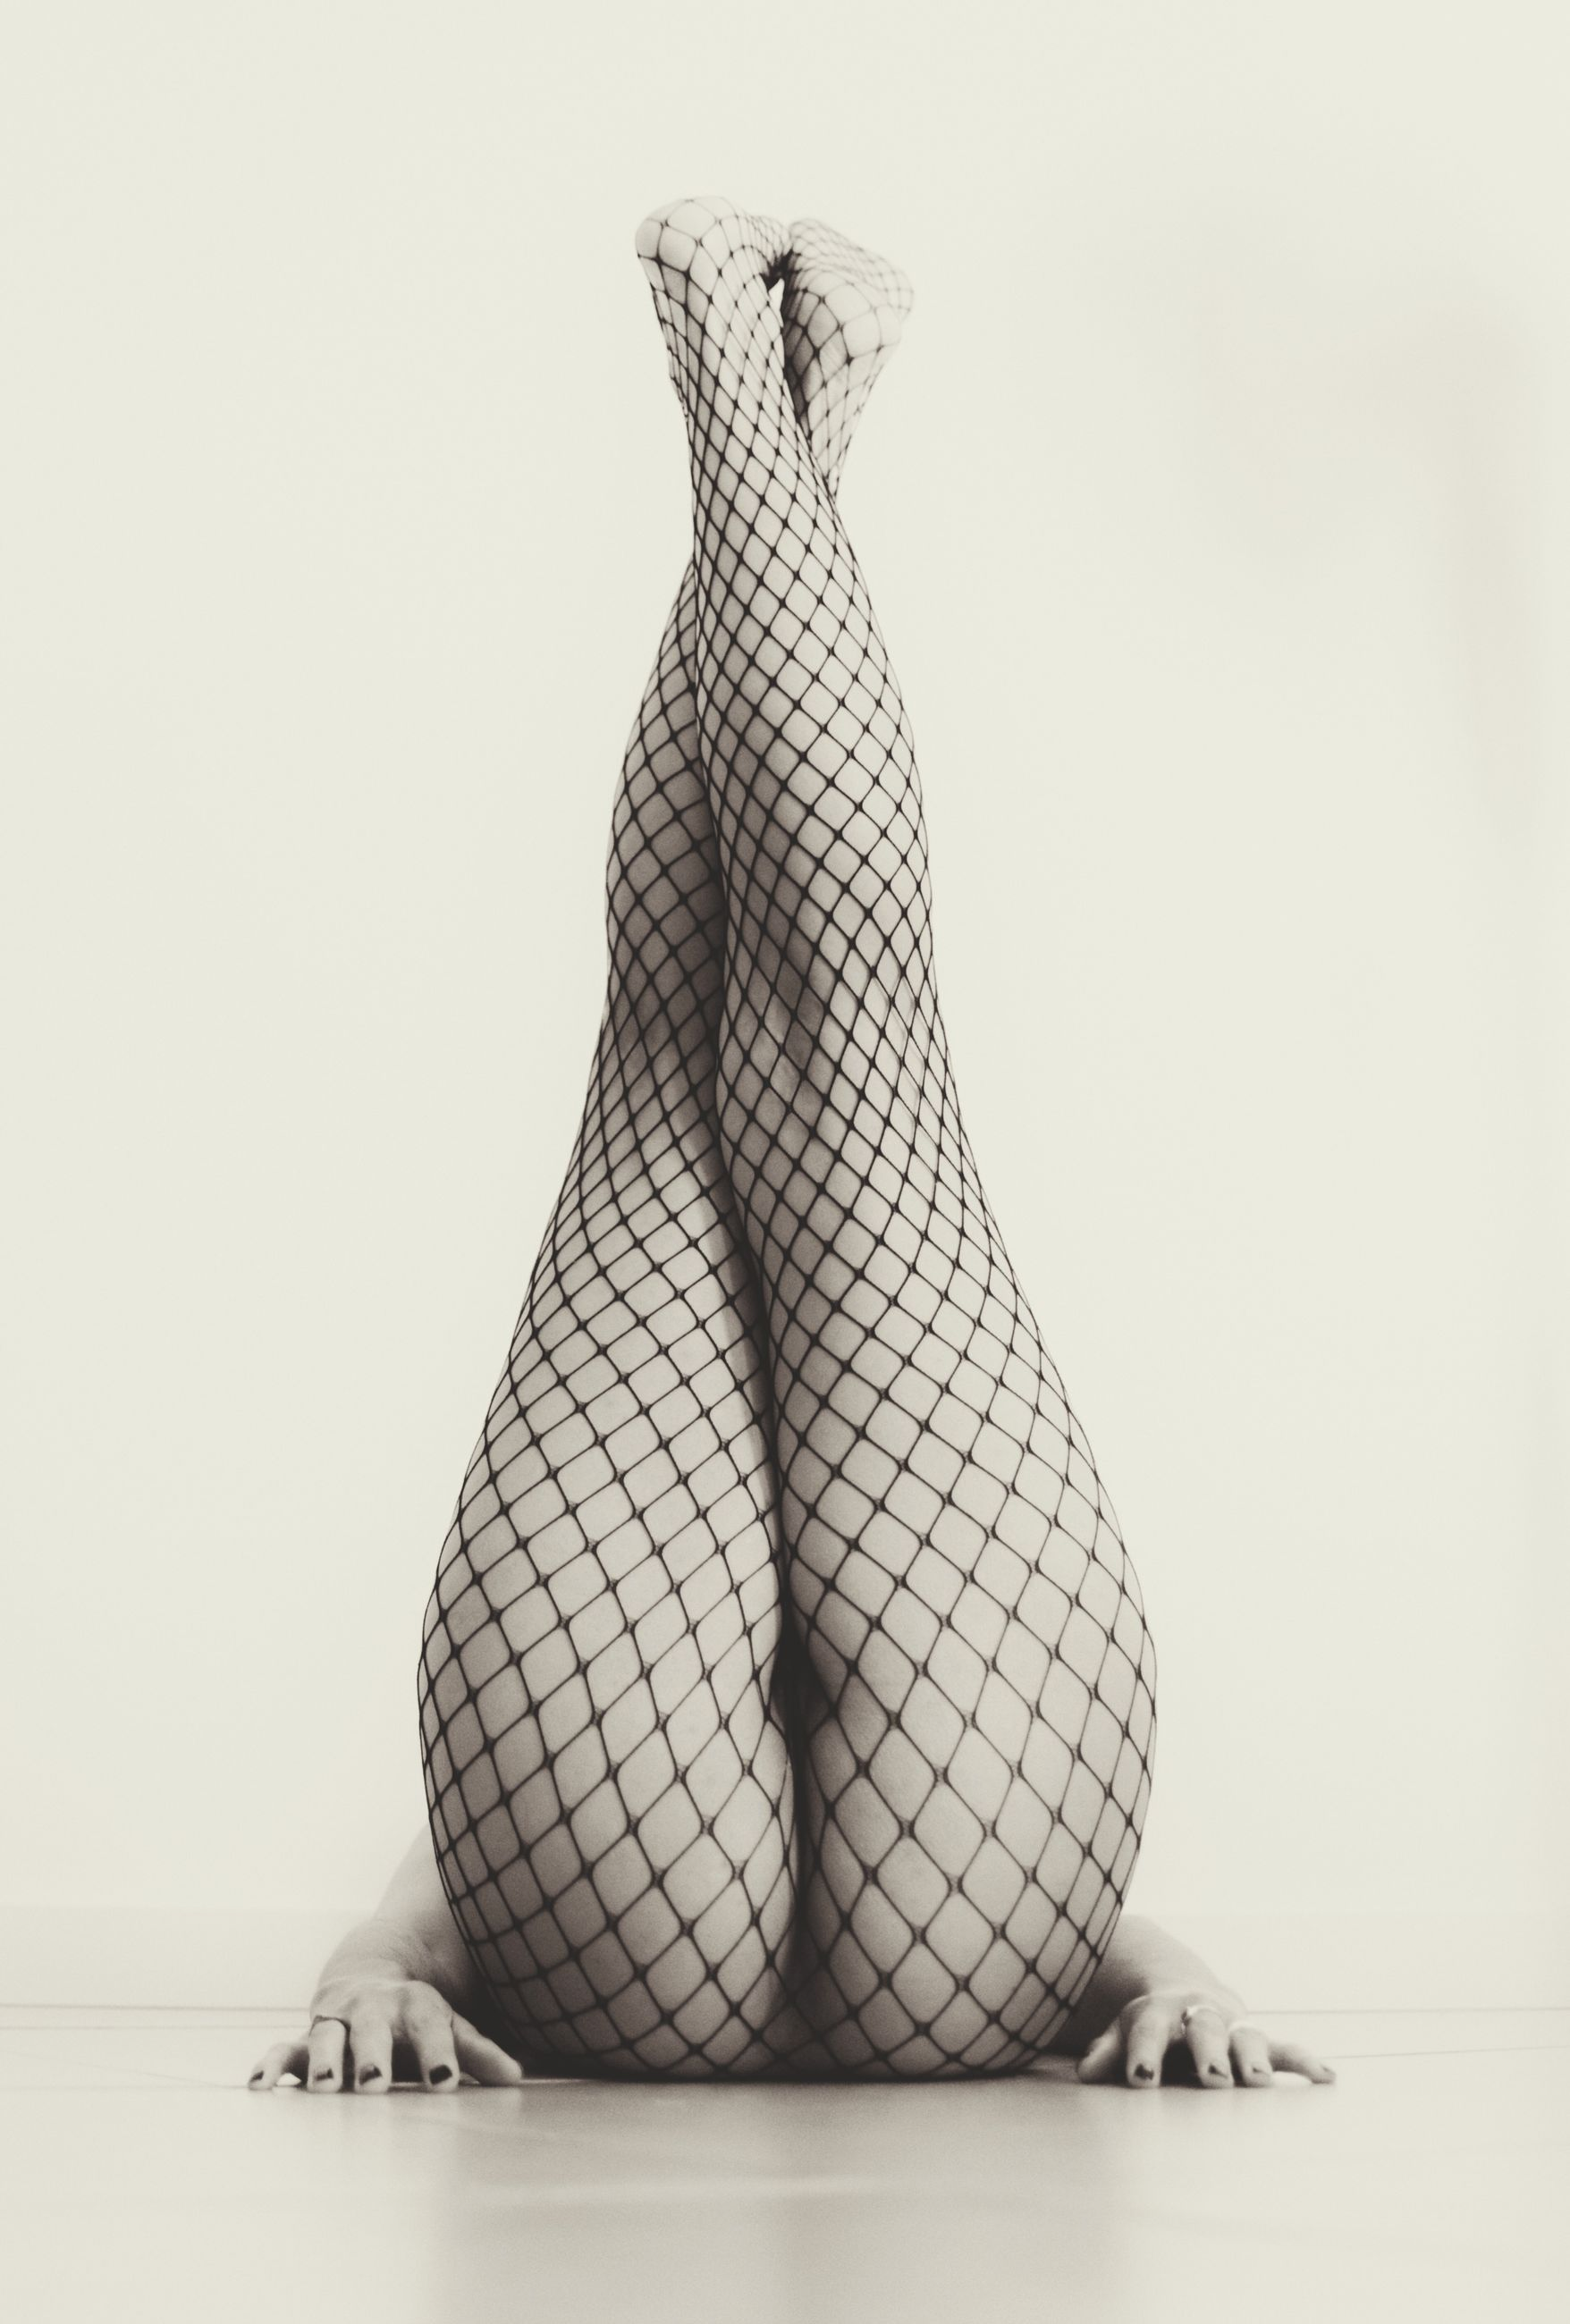 studio shot, one person, indoors, low section, white background, human leg, body part, females, women, human body part, barefoot, fashion, copy space, adult, clothing, stockings, lifestyles, human foot, human limb, beautiful woman